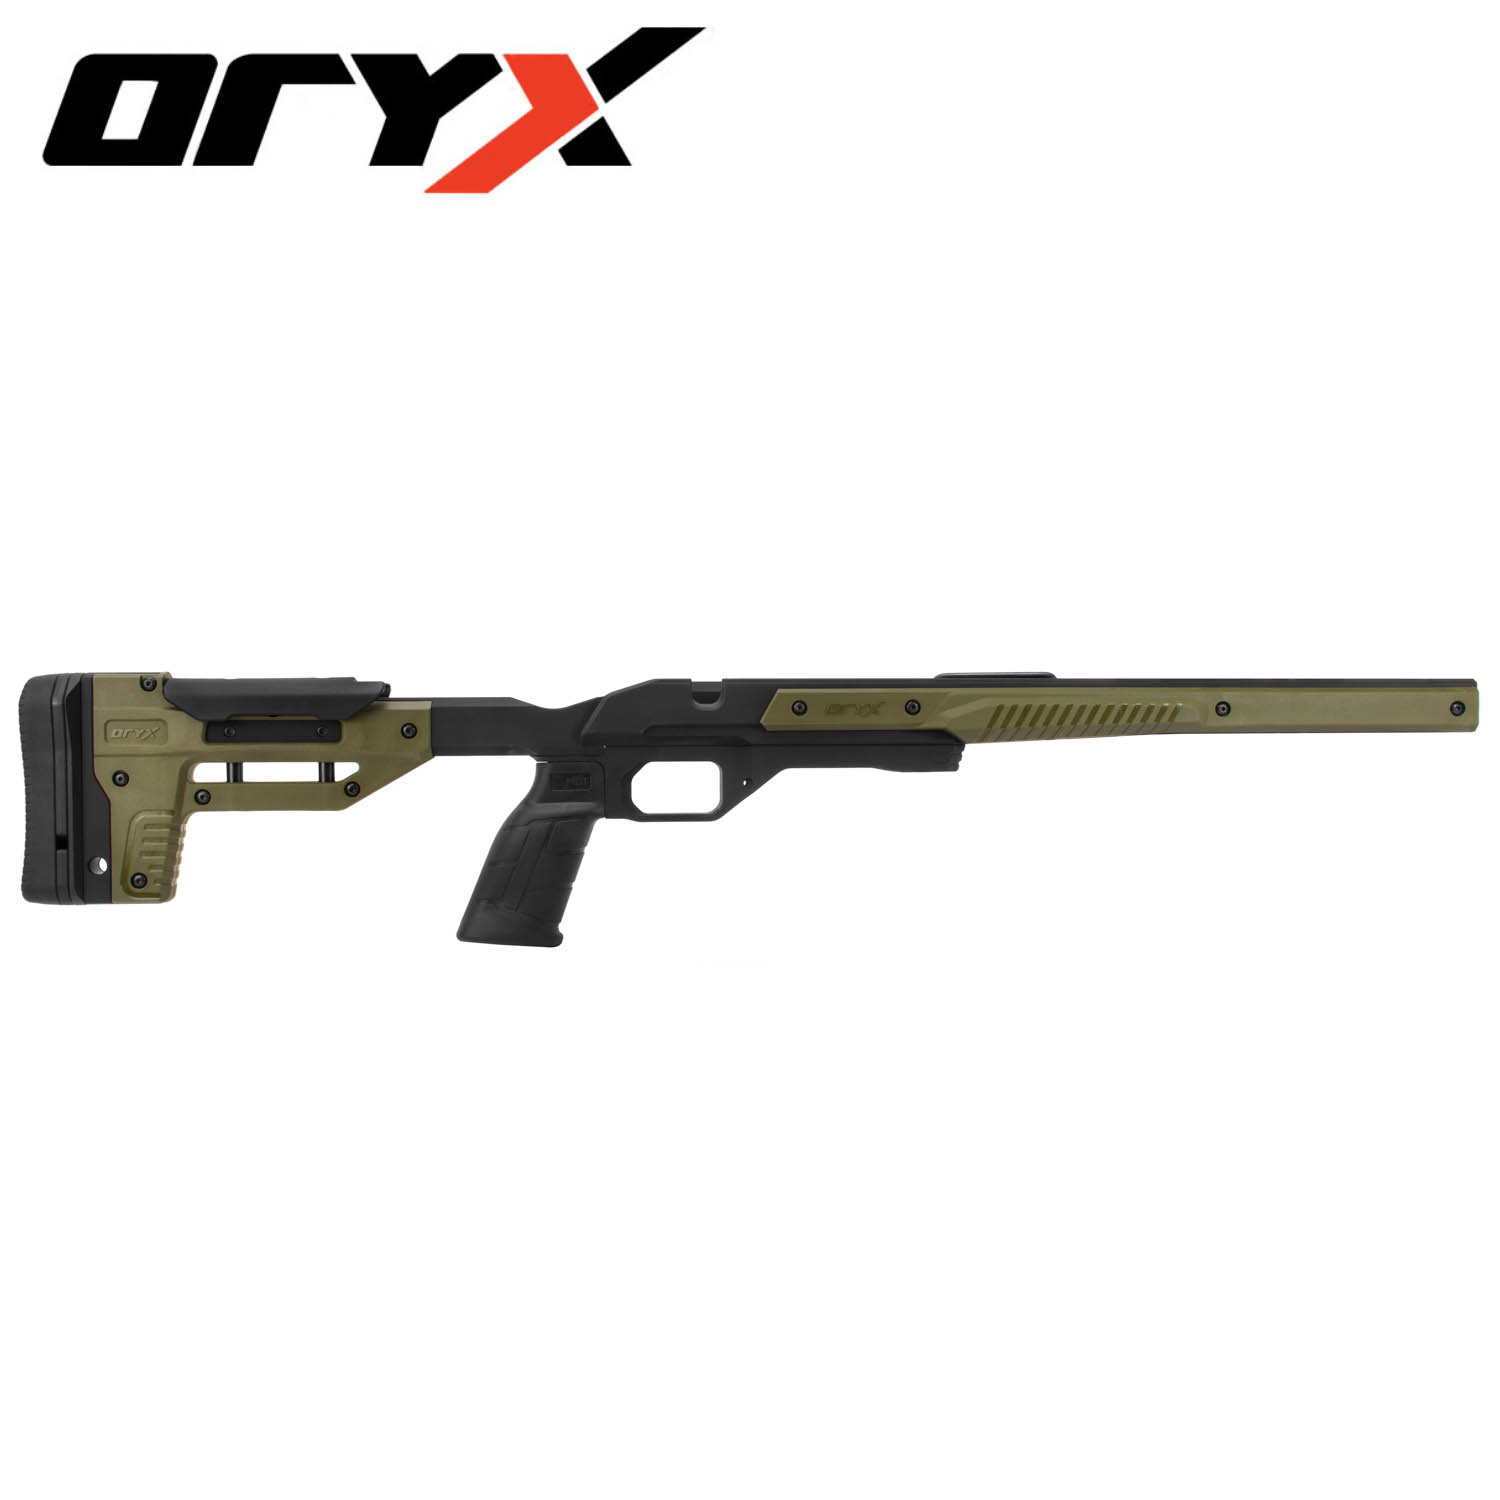 Oryx Rifle Chassis, Ruger American Short Action, Black / OD Green: Midwest  Gun Works